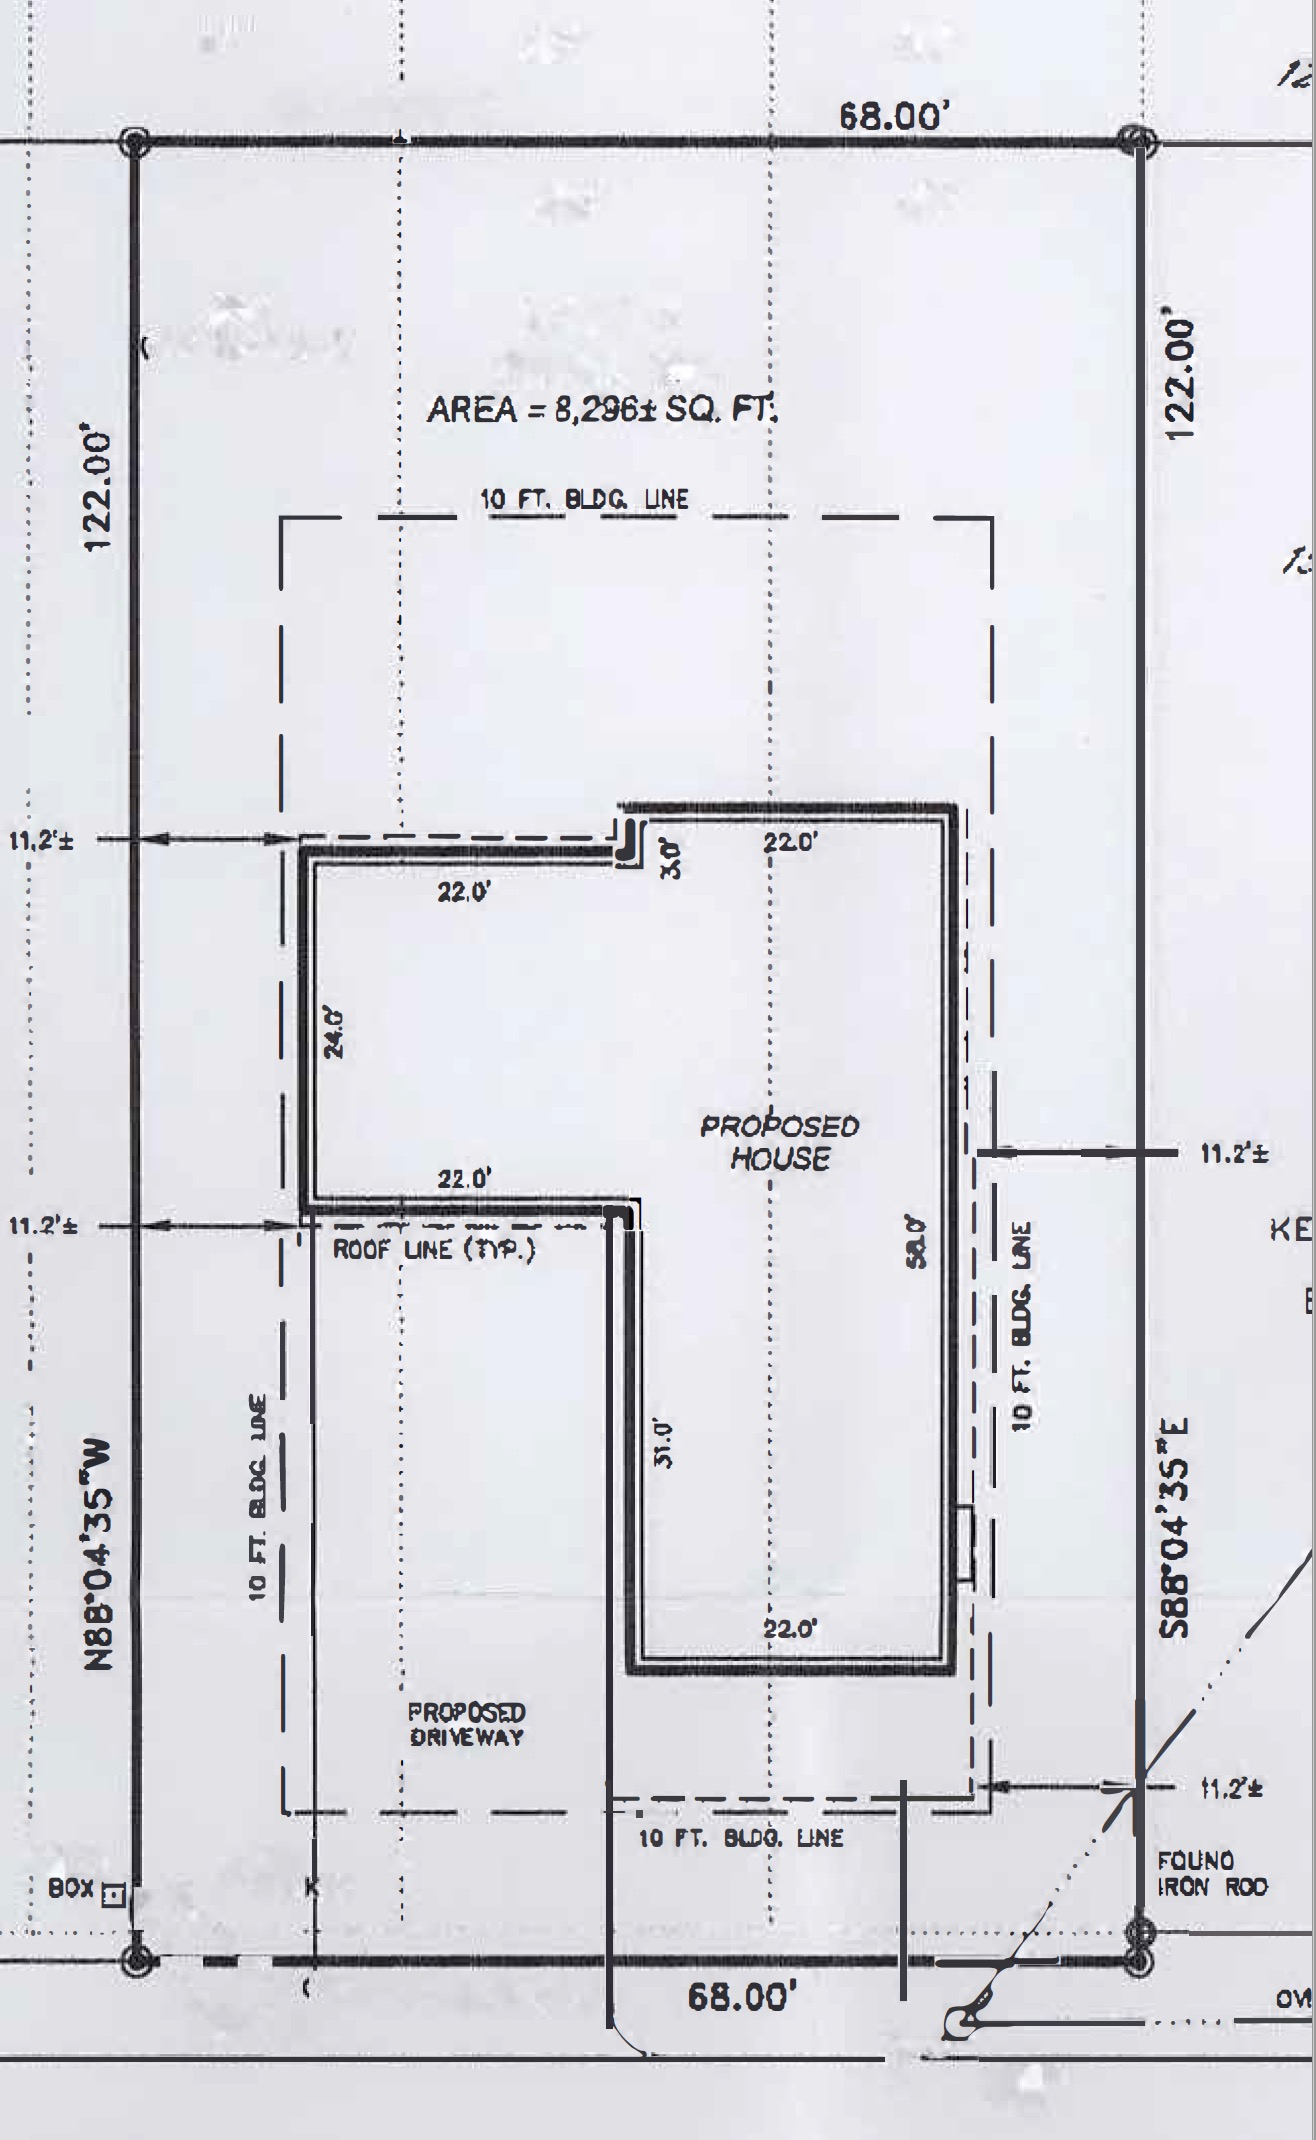 Plot Plan for my house in Saratoga, NY.